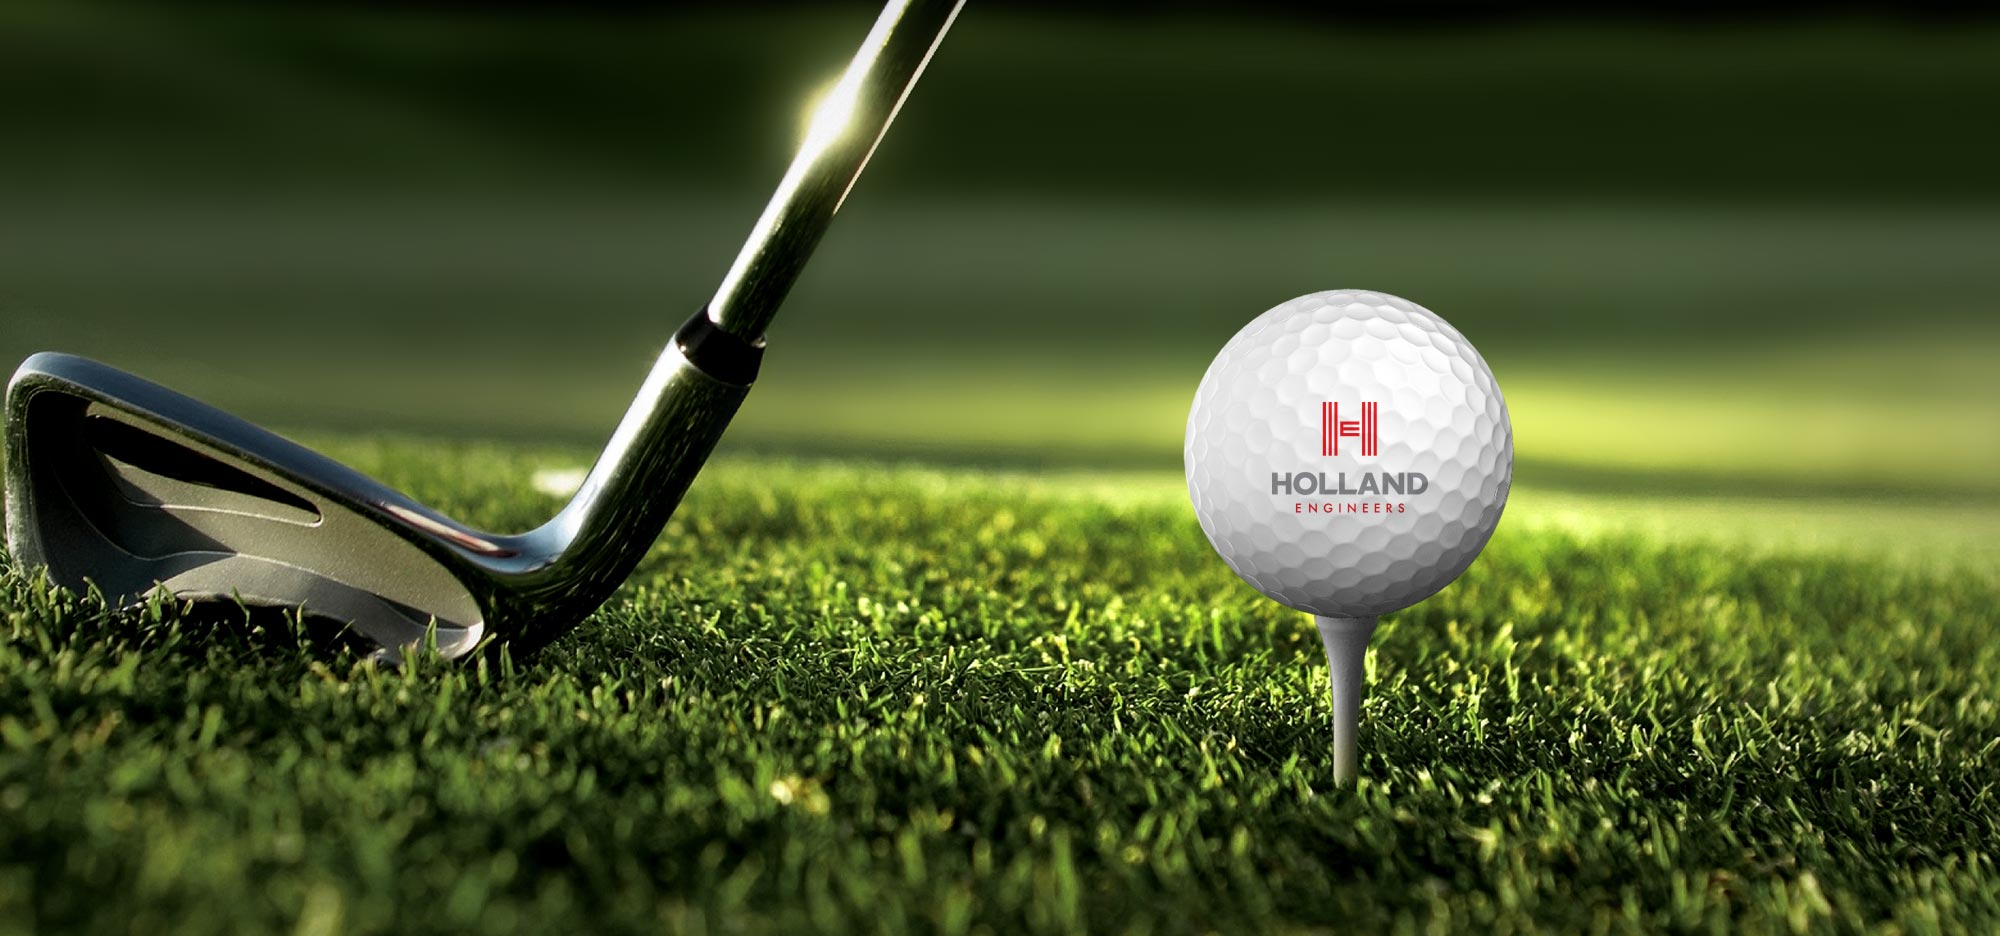 Holland Engineers golf ball design